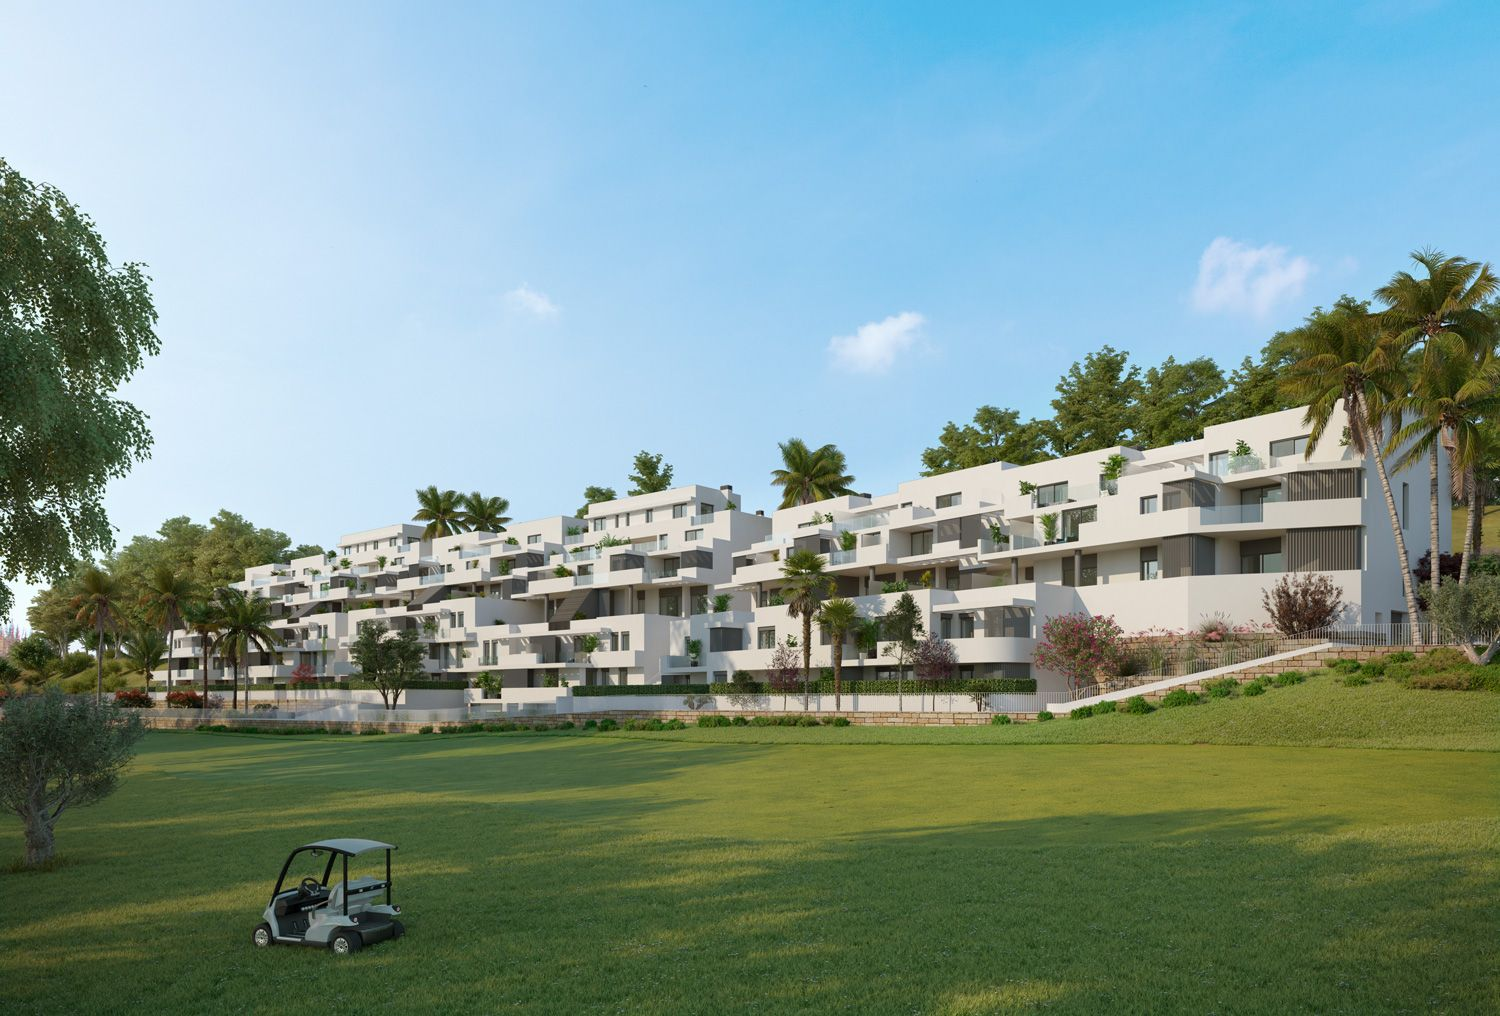 Apartments with views over golf courses in Estepona 15